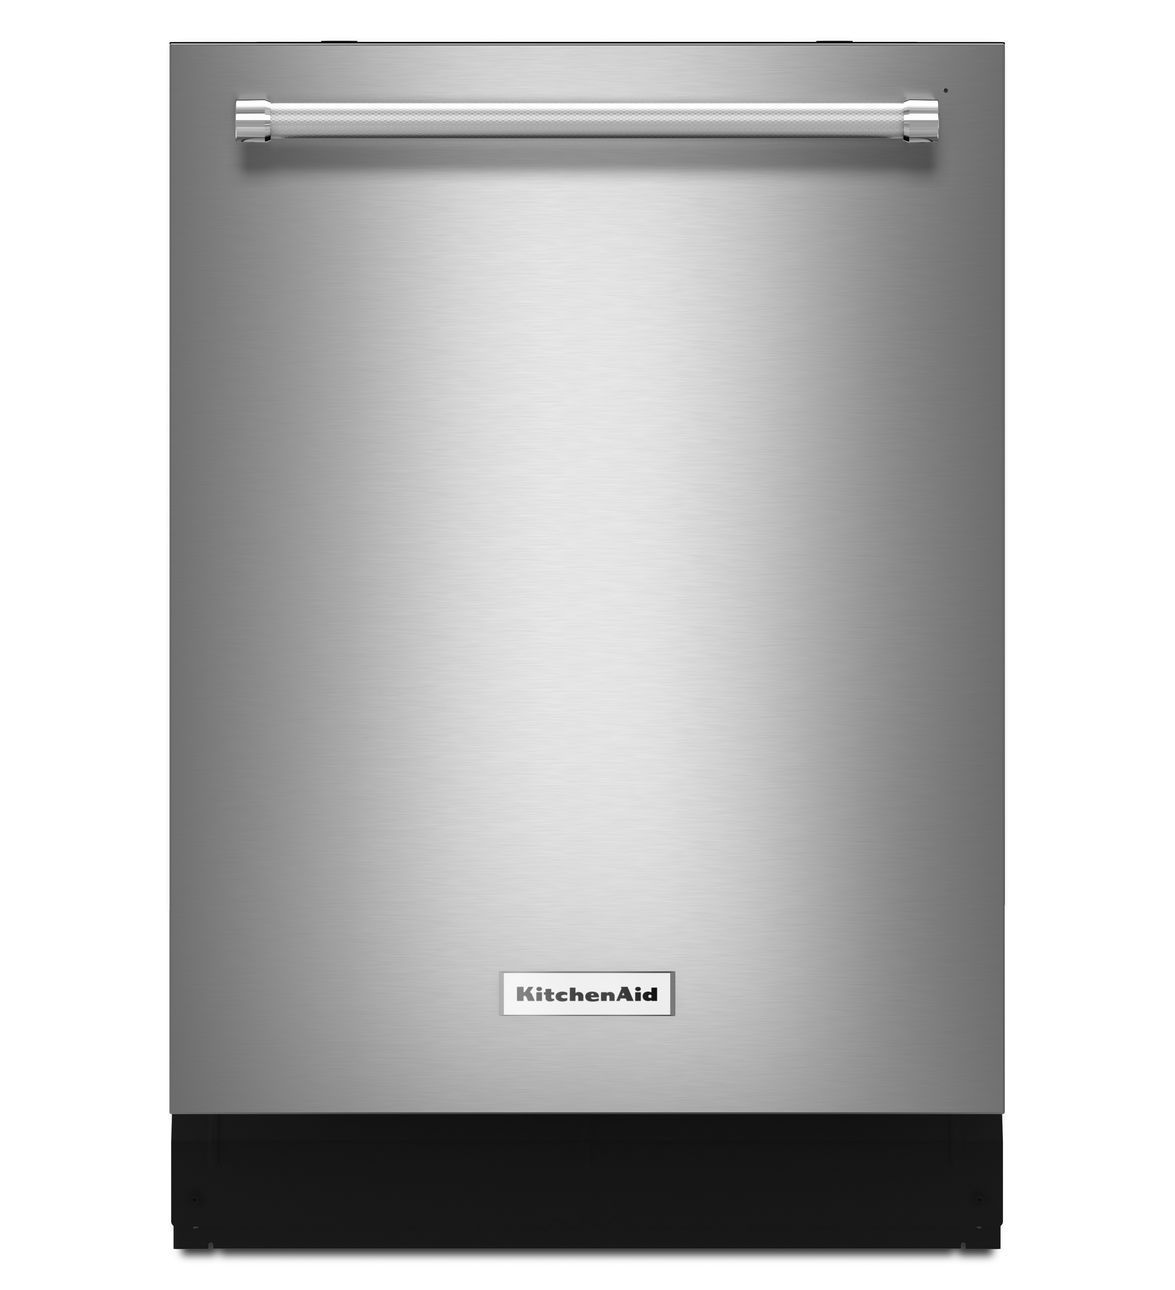 """KitchenAid KDTM354ESS dishwasher. Consumer Report's 2nd highest rated dishwasher. 85 overall score. 23 7/8""""W x 24.75""""D x 33.5""""H. 44 decibels. Approximate retail price: $1000"""